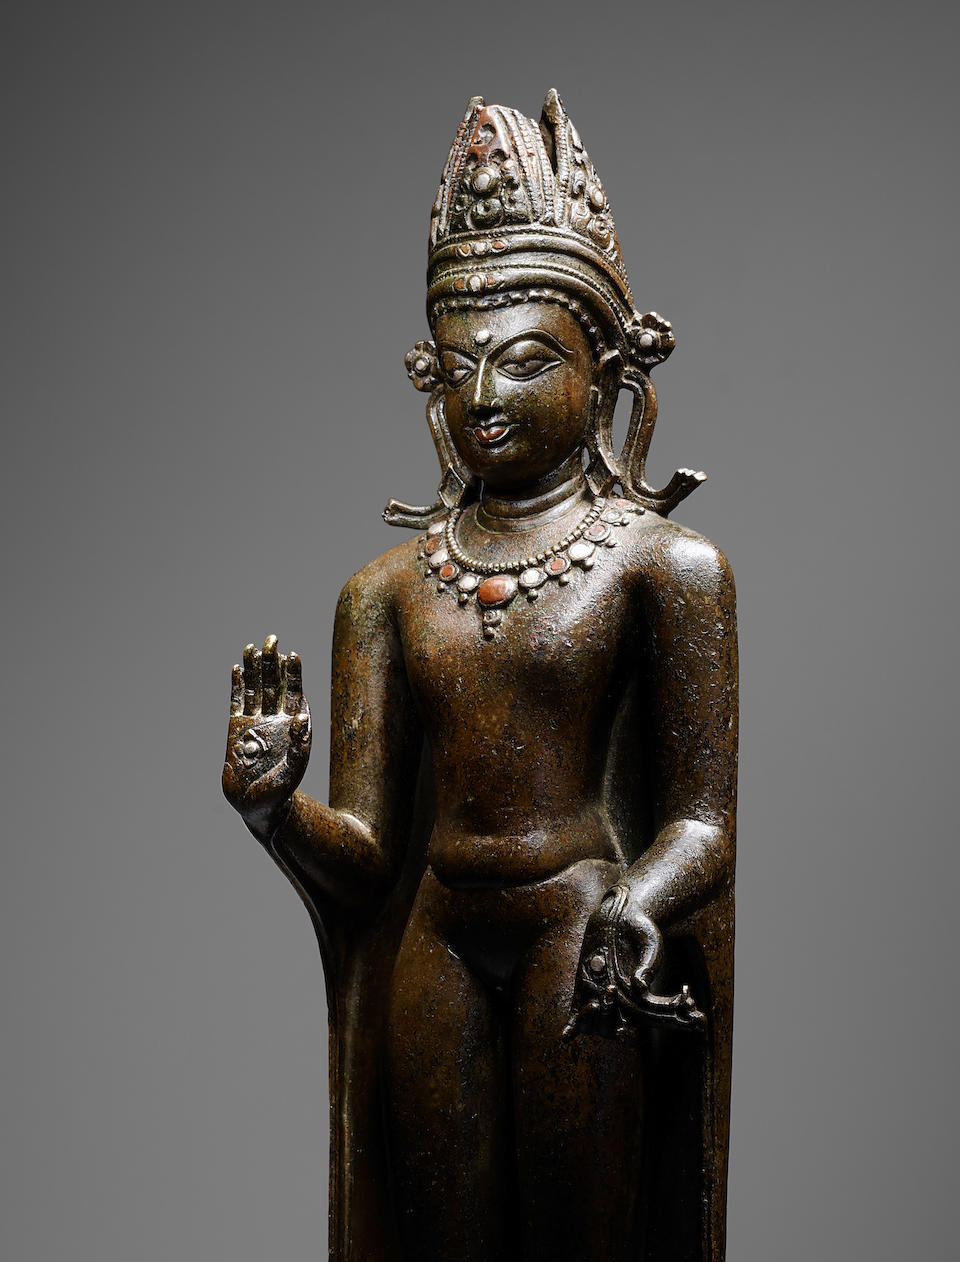 THE SONNERY KURKIHAR BUDDHACOPPER ALLOY WITH SILVER AND COPPER INLAY KURKIHAR, PALA PERIOD, 11TH CENTURY